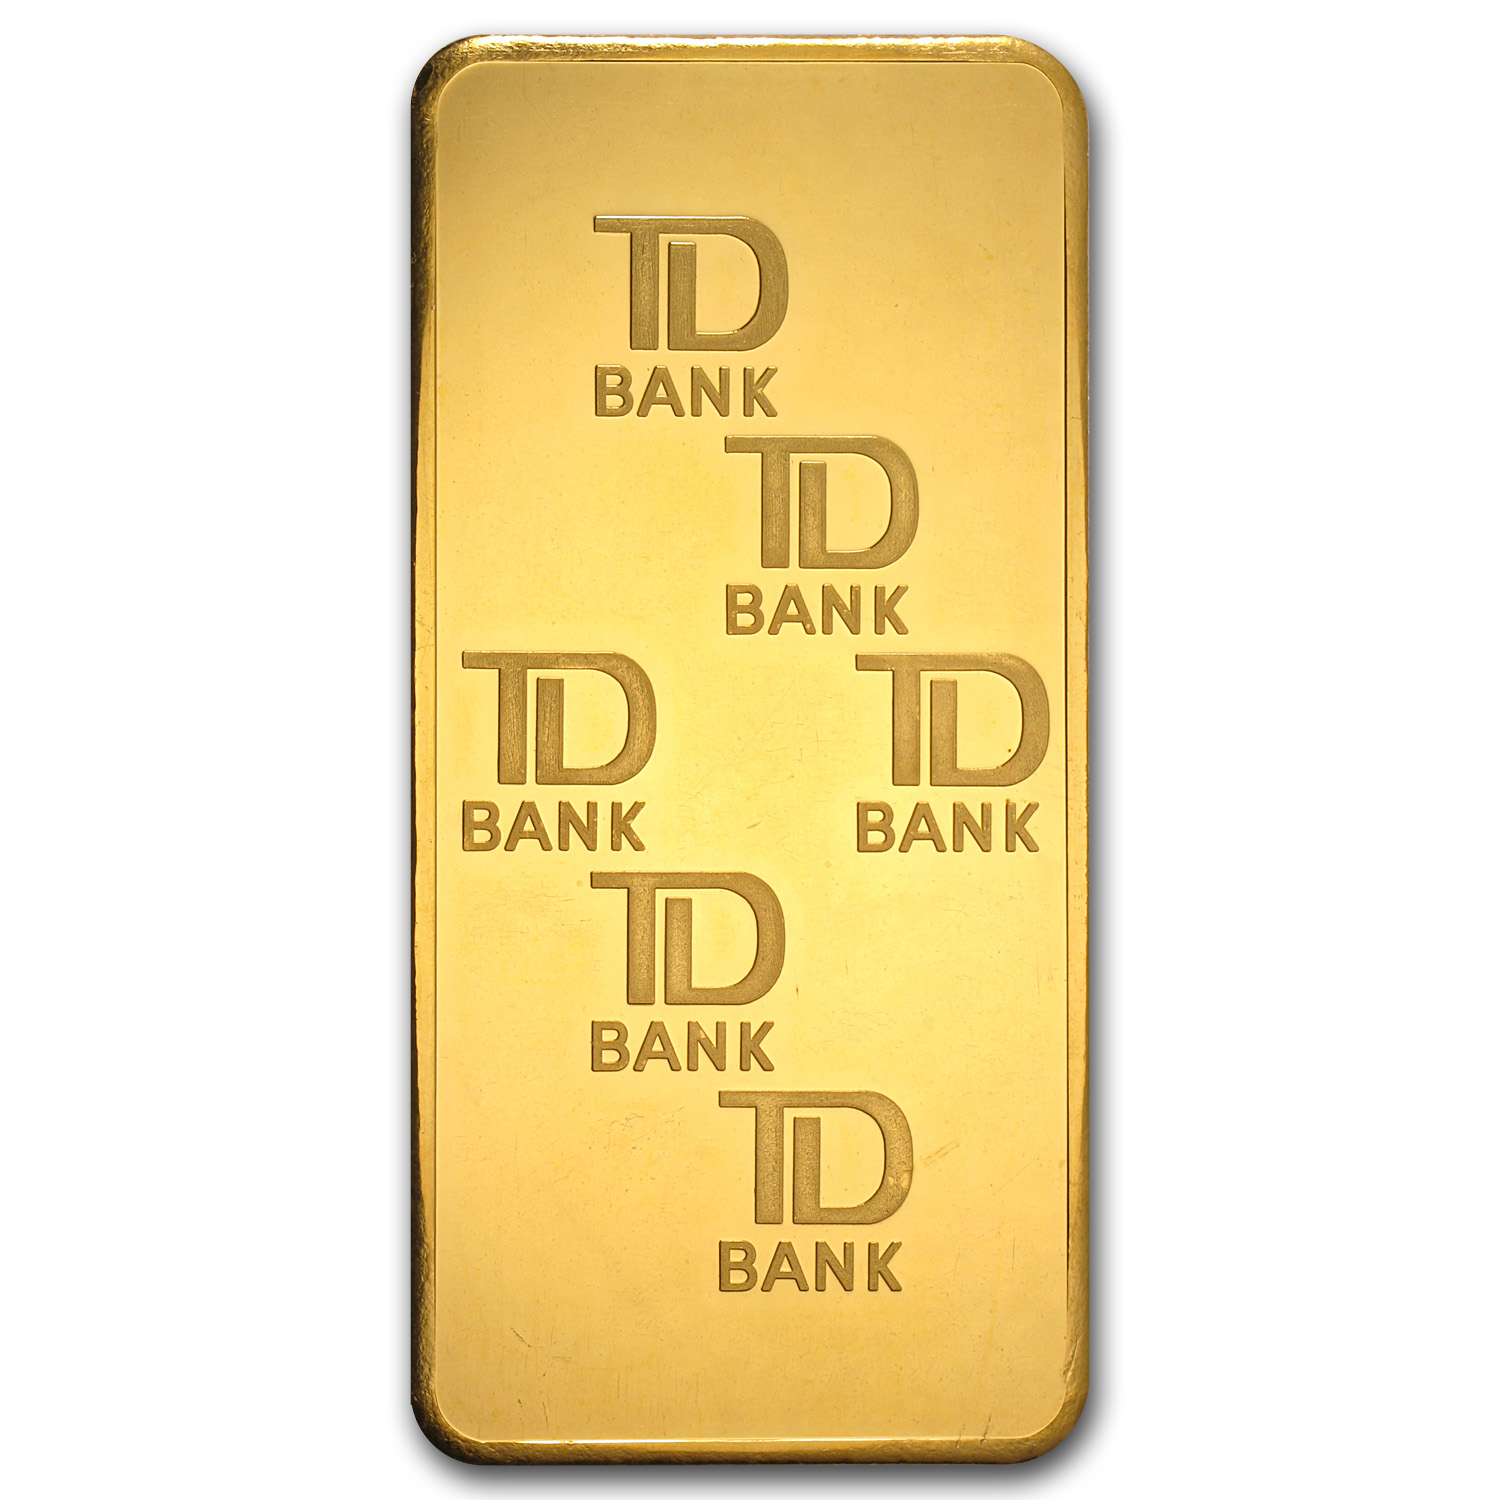 10 oz Gold Bars - Johnson Matthey (TD Bank)